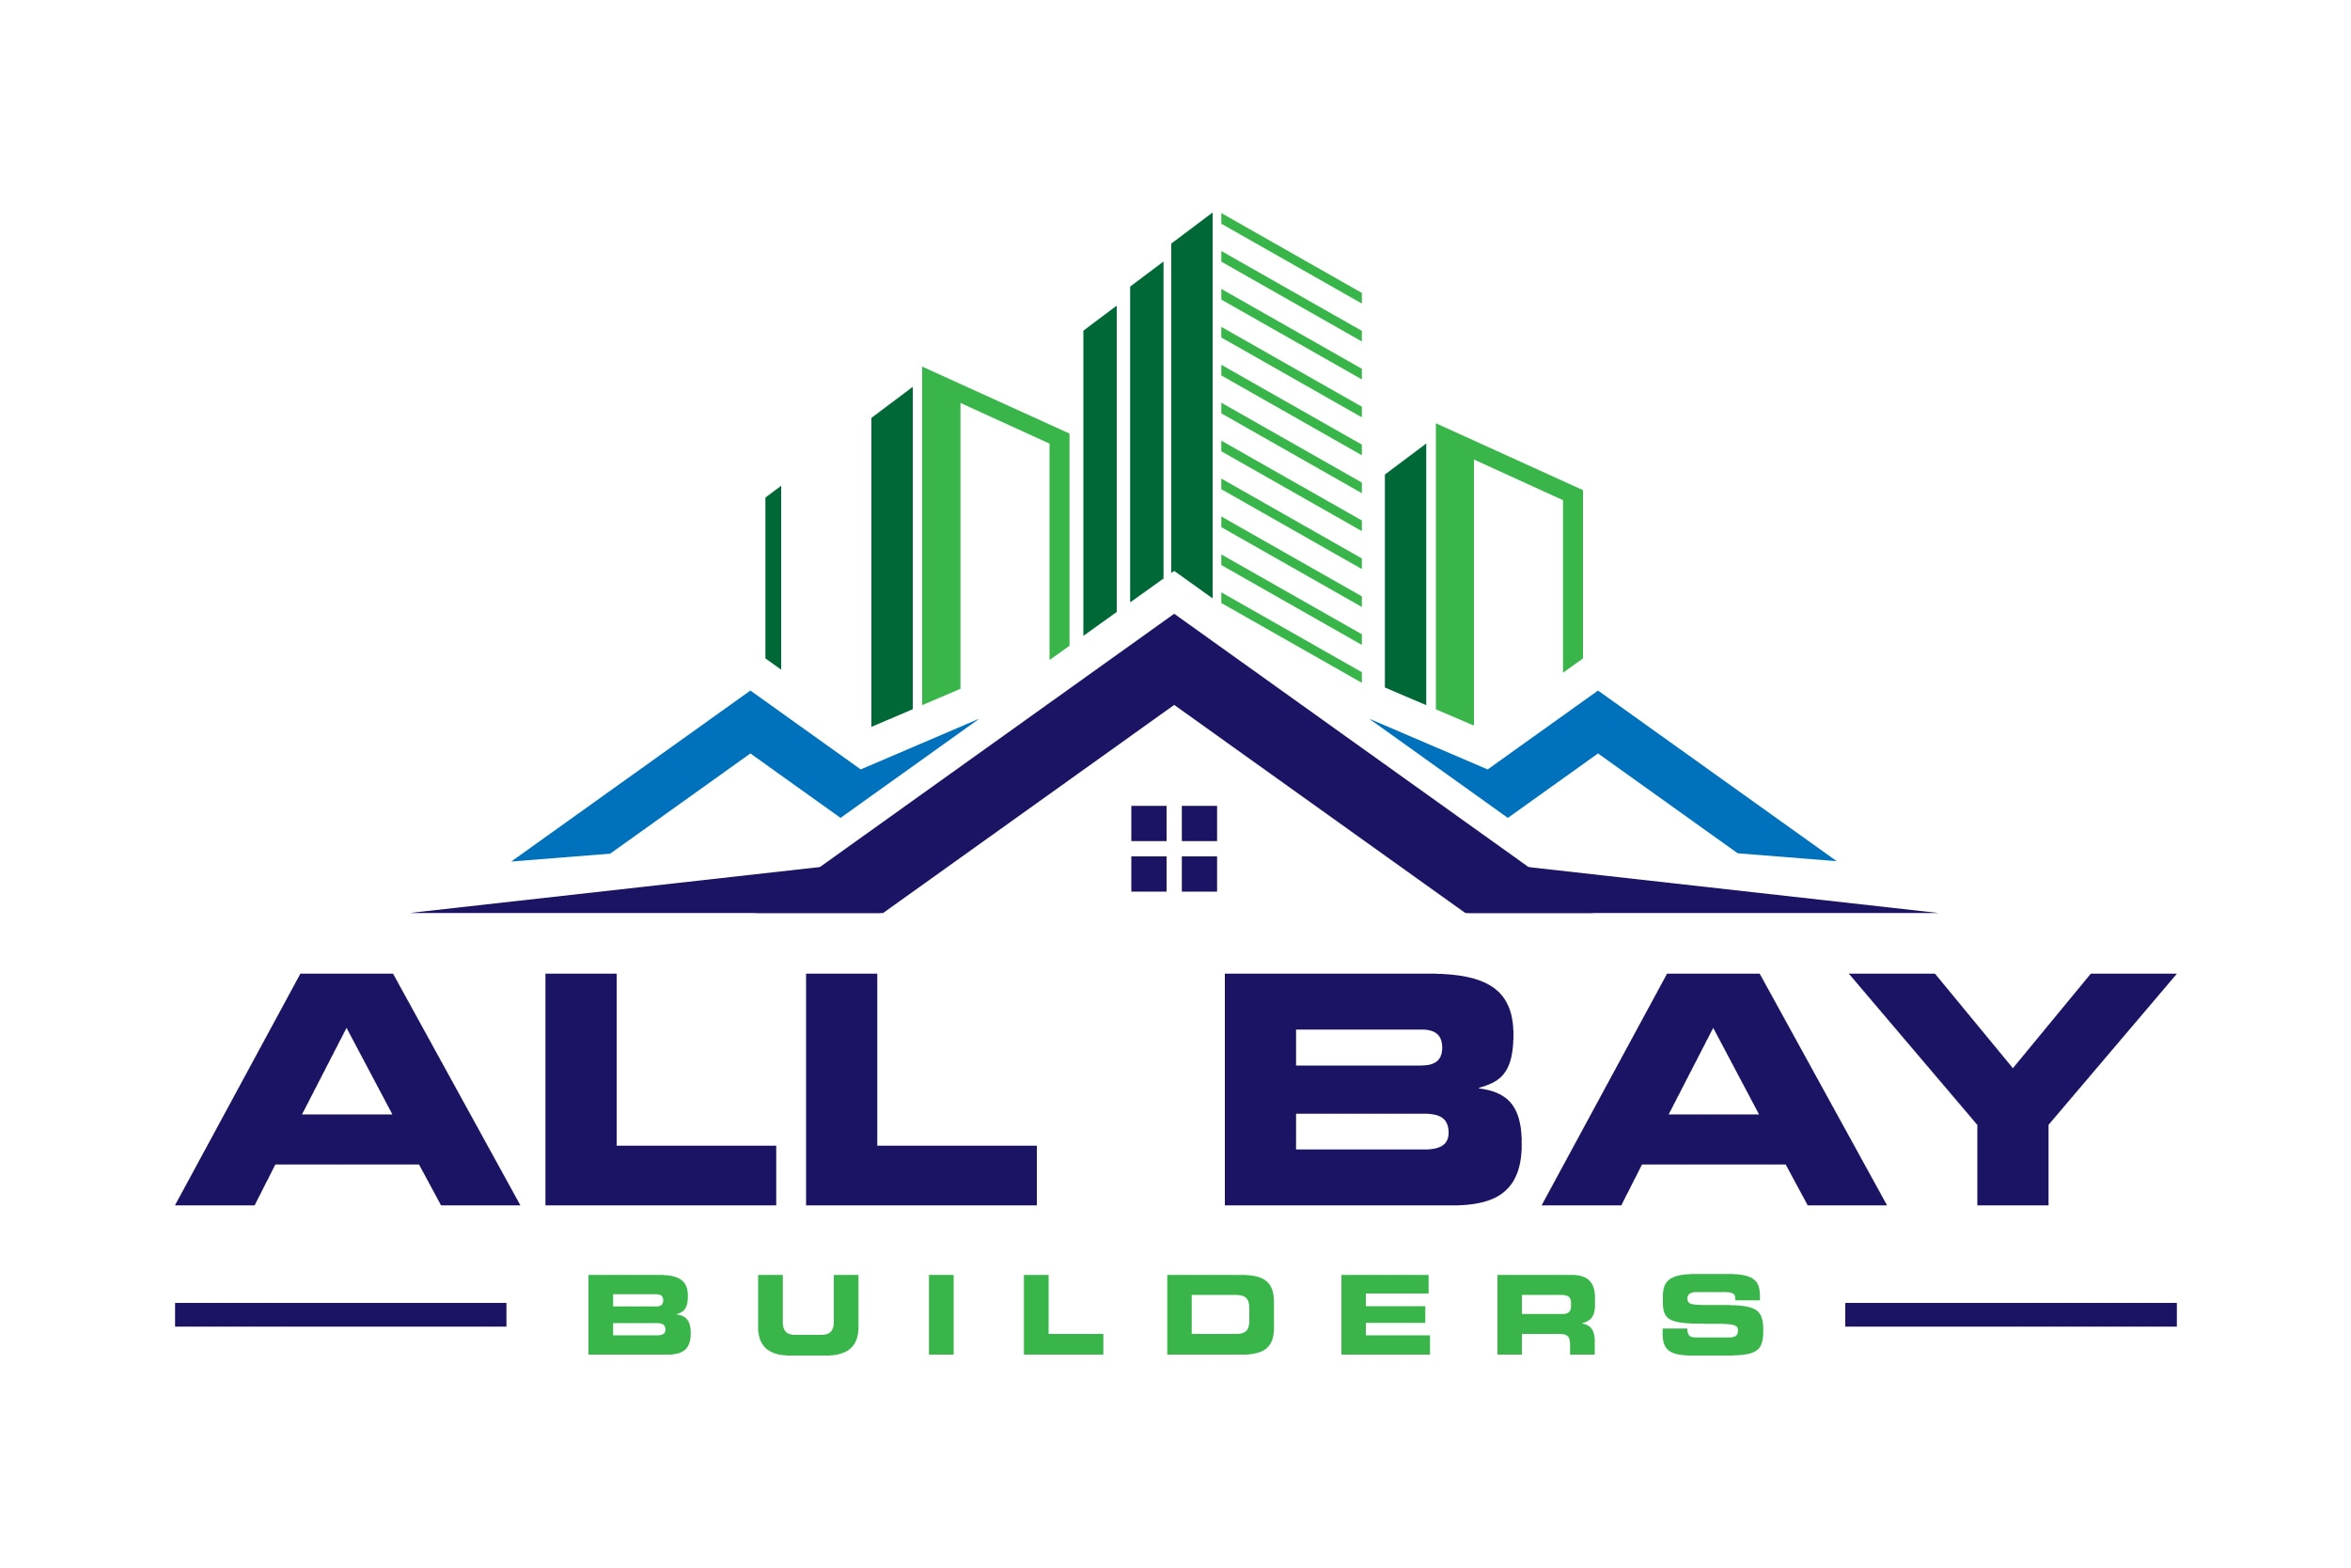 All Bay Builders logo